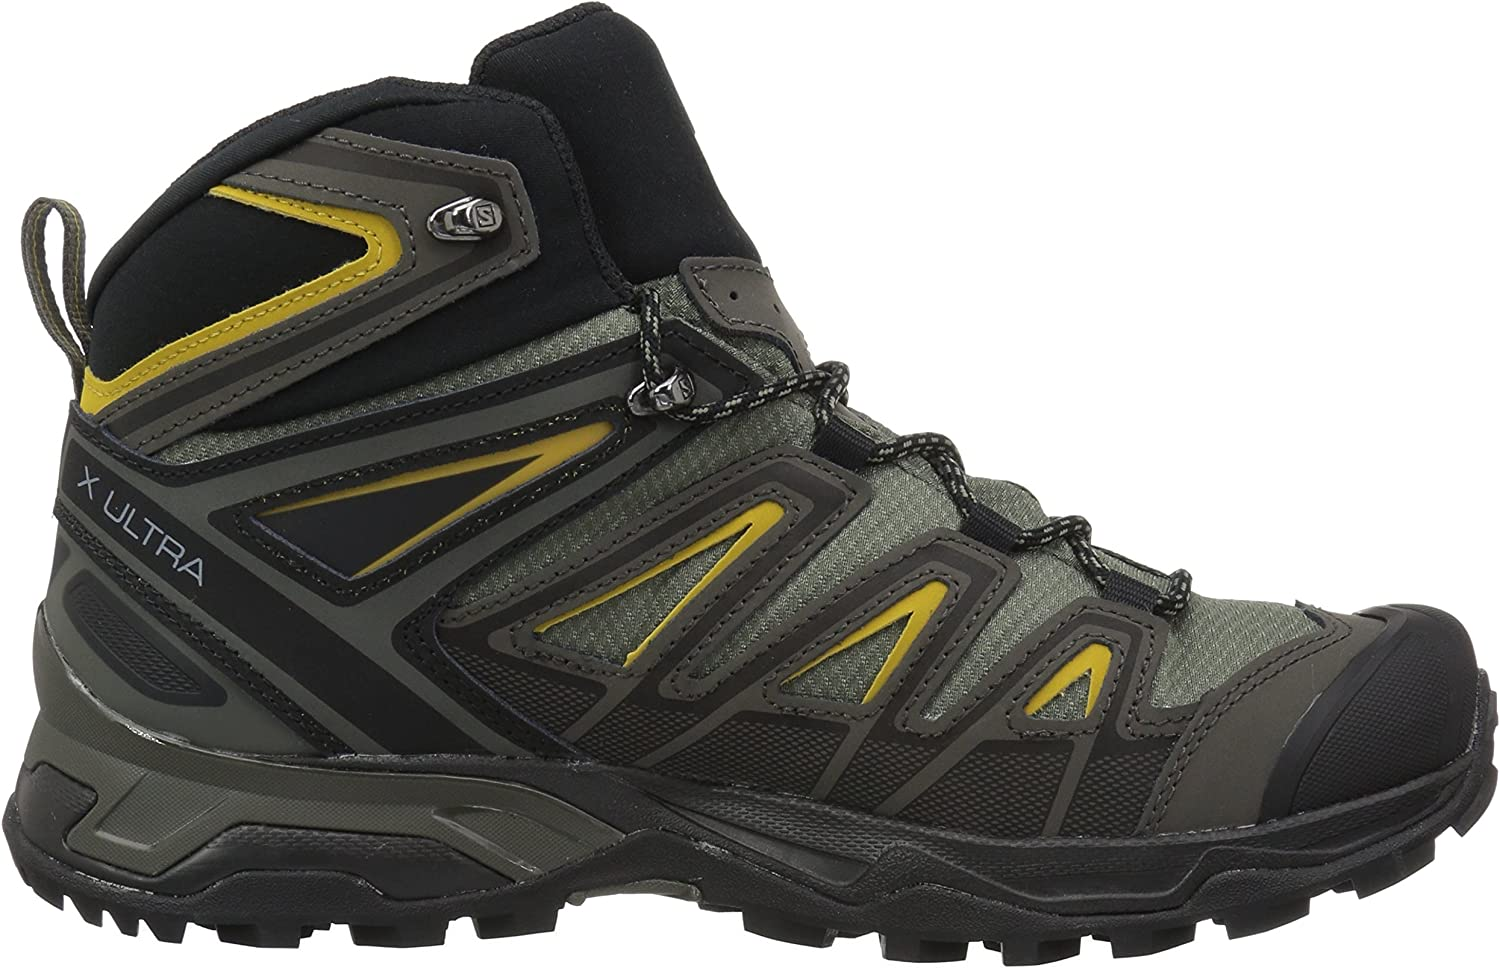 salomon x ultra mid 3 gtx womens australia zoo